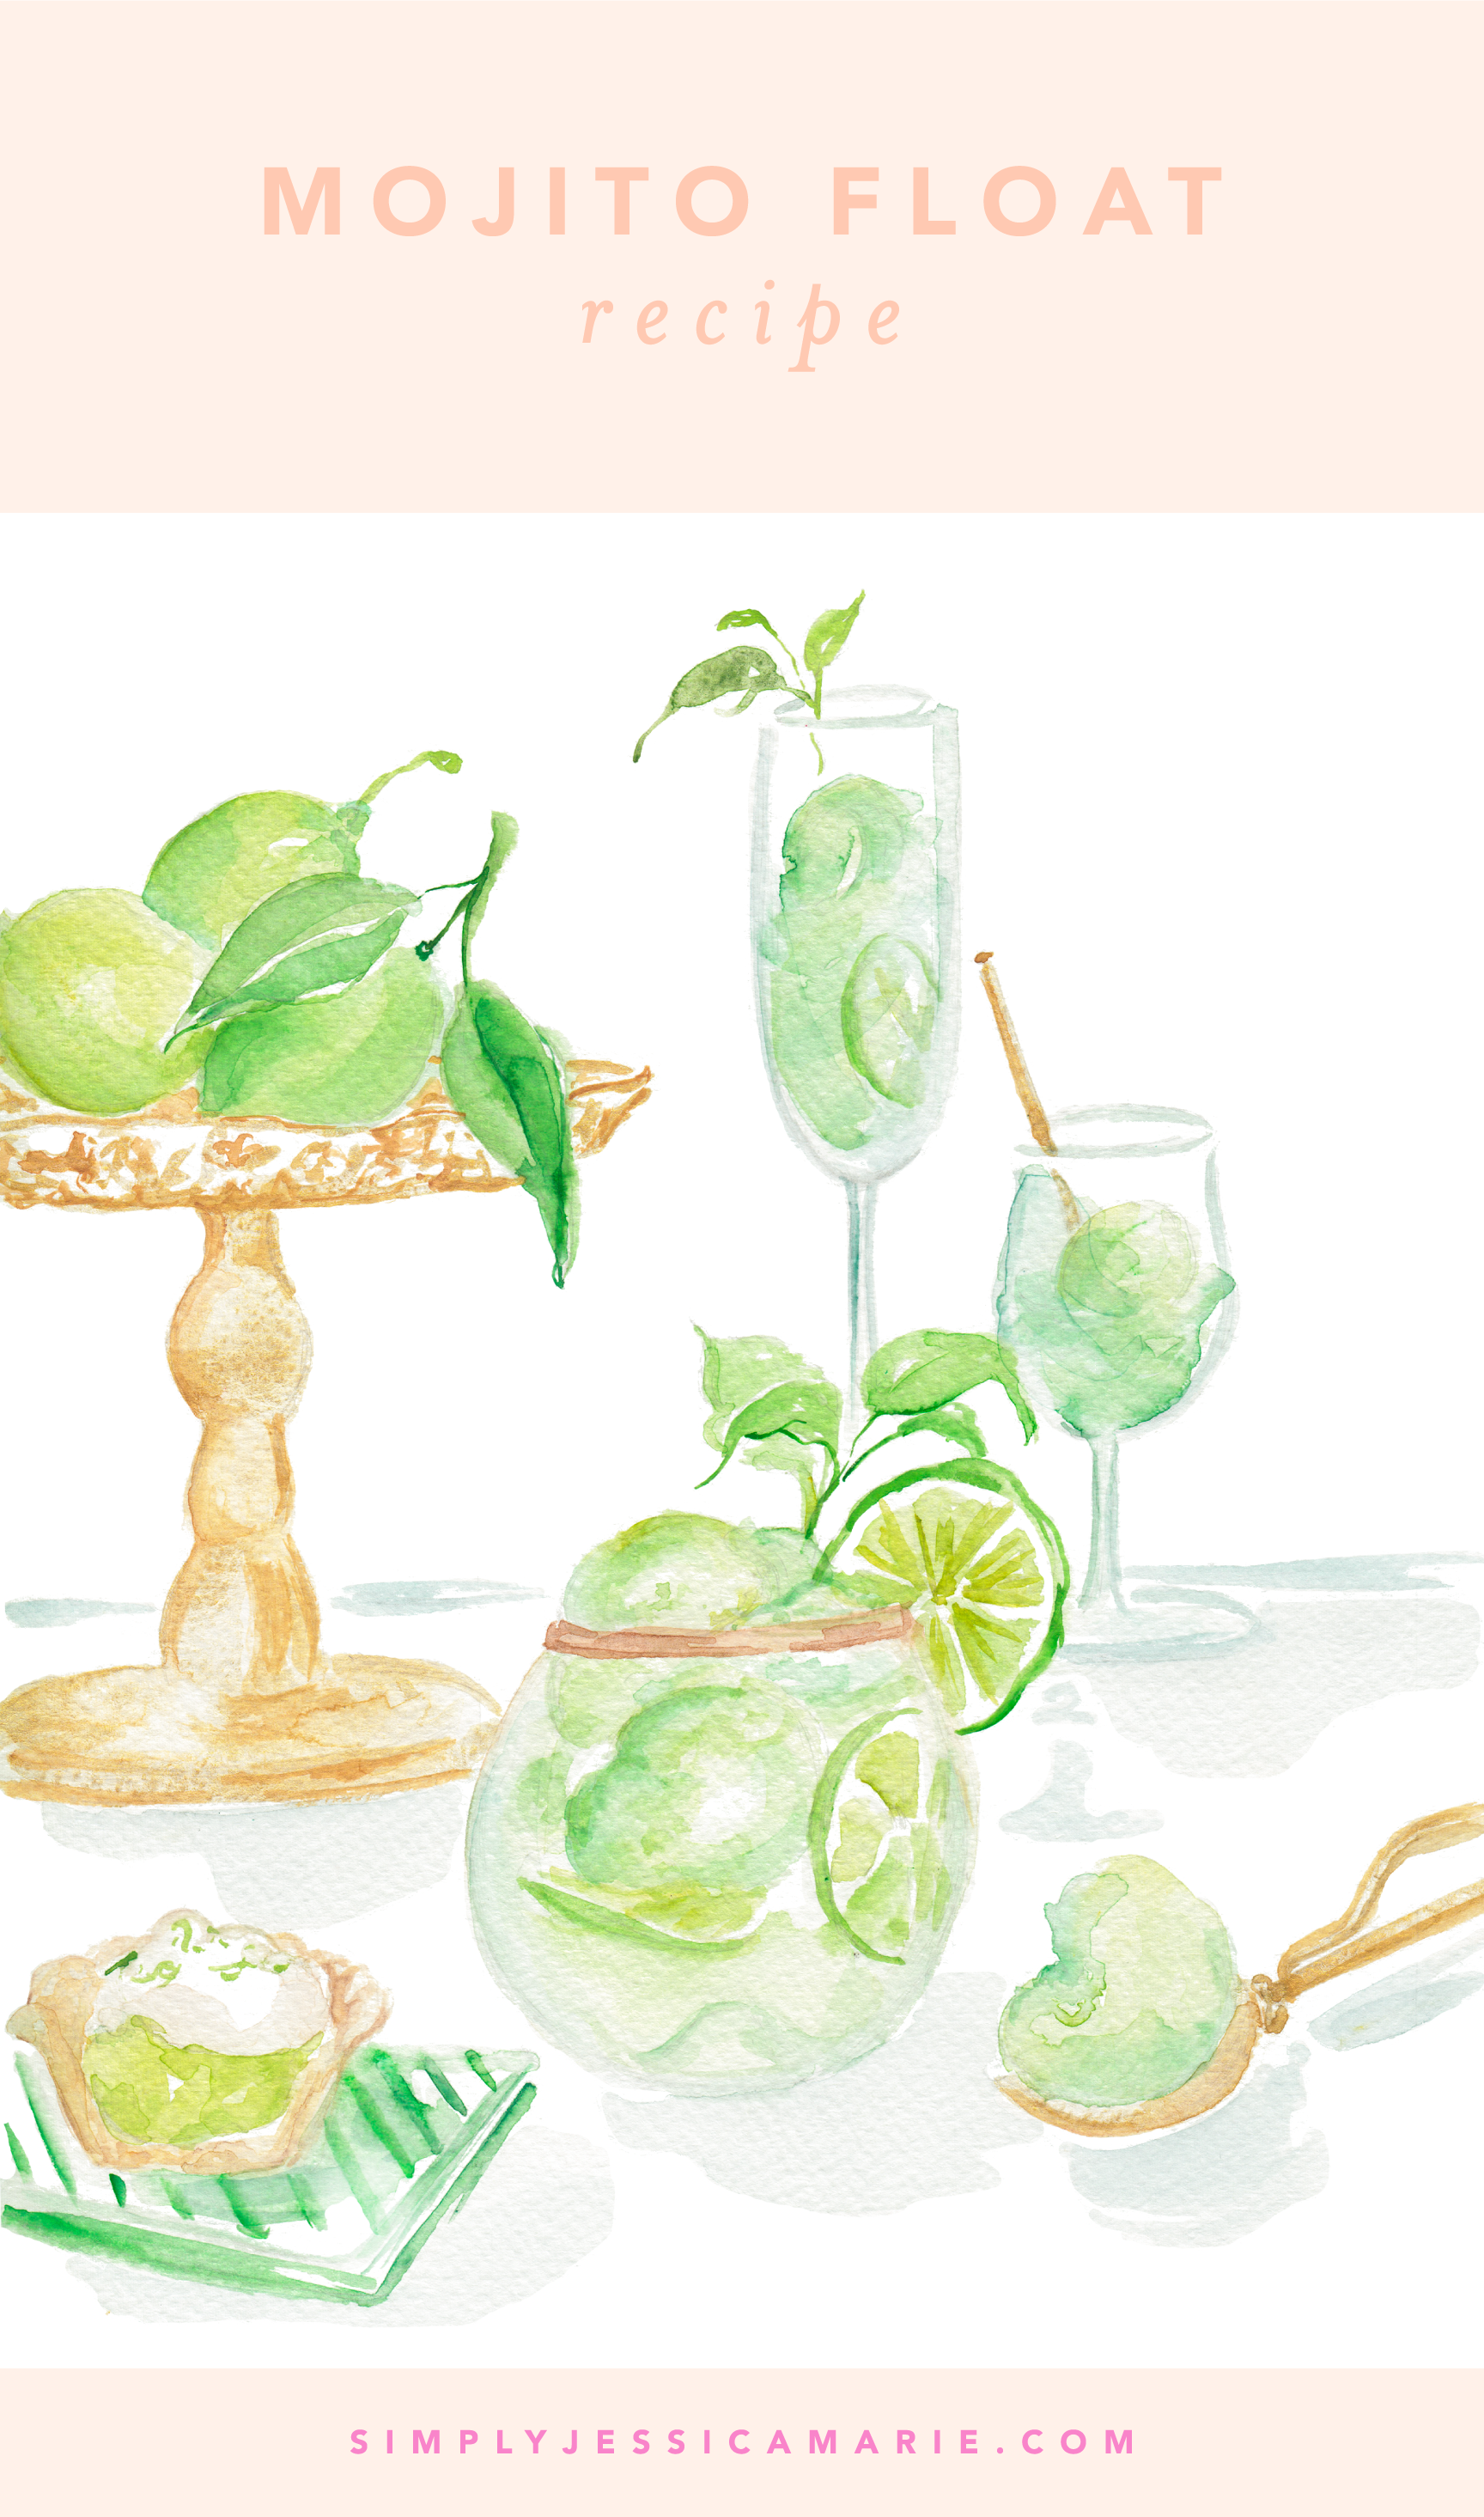 Mojito Float Recipe | Watercolor Cocktail Painting by Simply Jessica Marie | SJM 2018 Cocktail Calendar